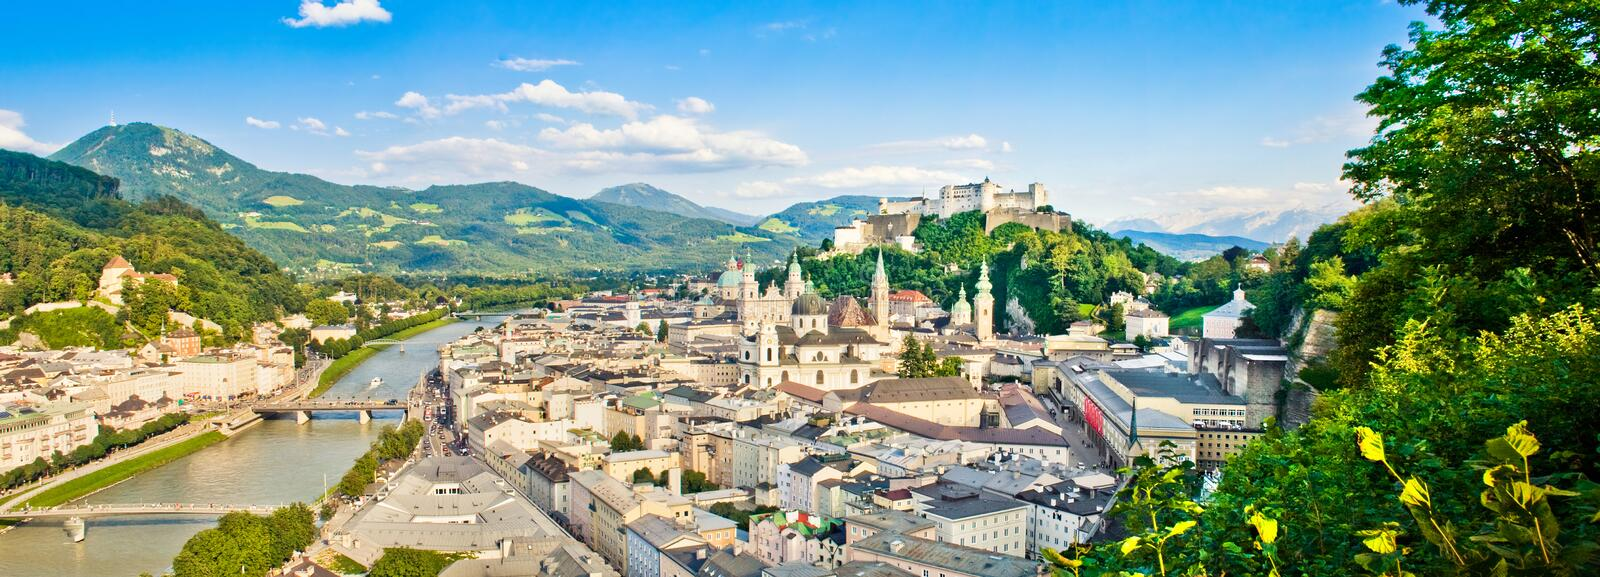 Panoramic view of Salzburg, Austria royalty free stock photography